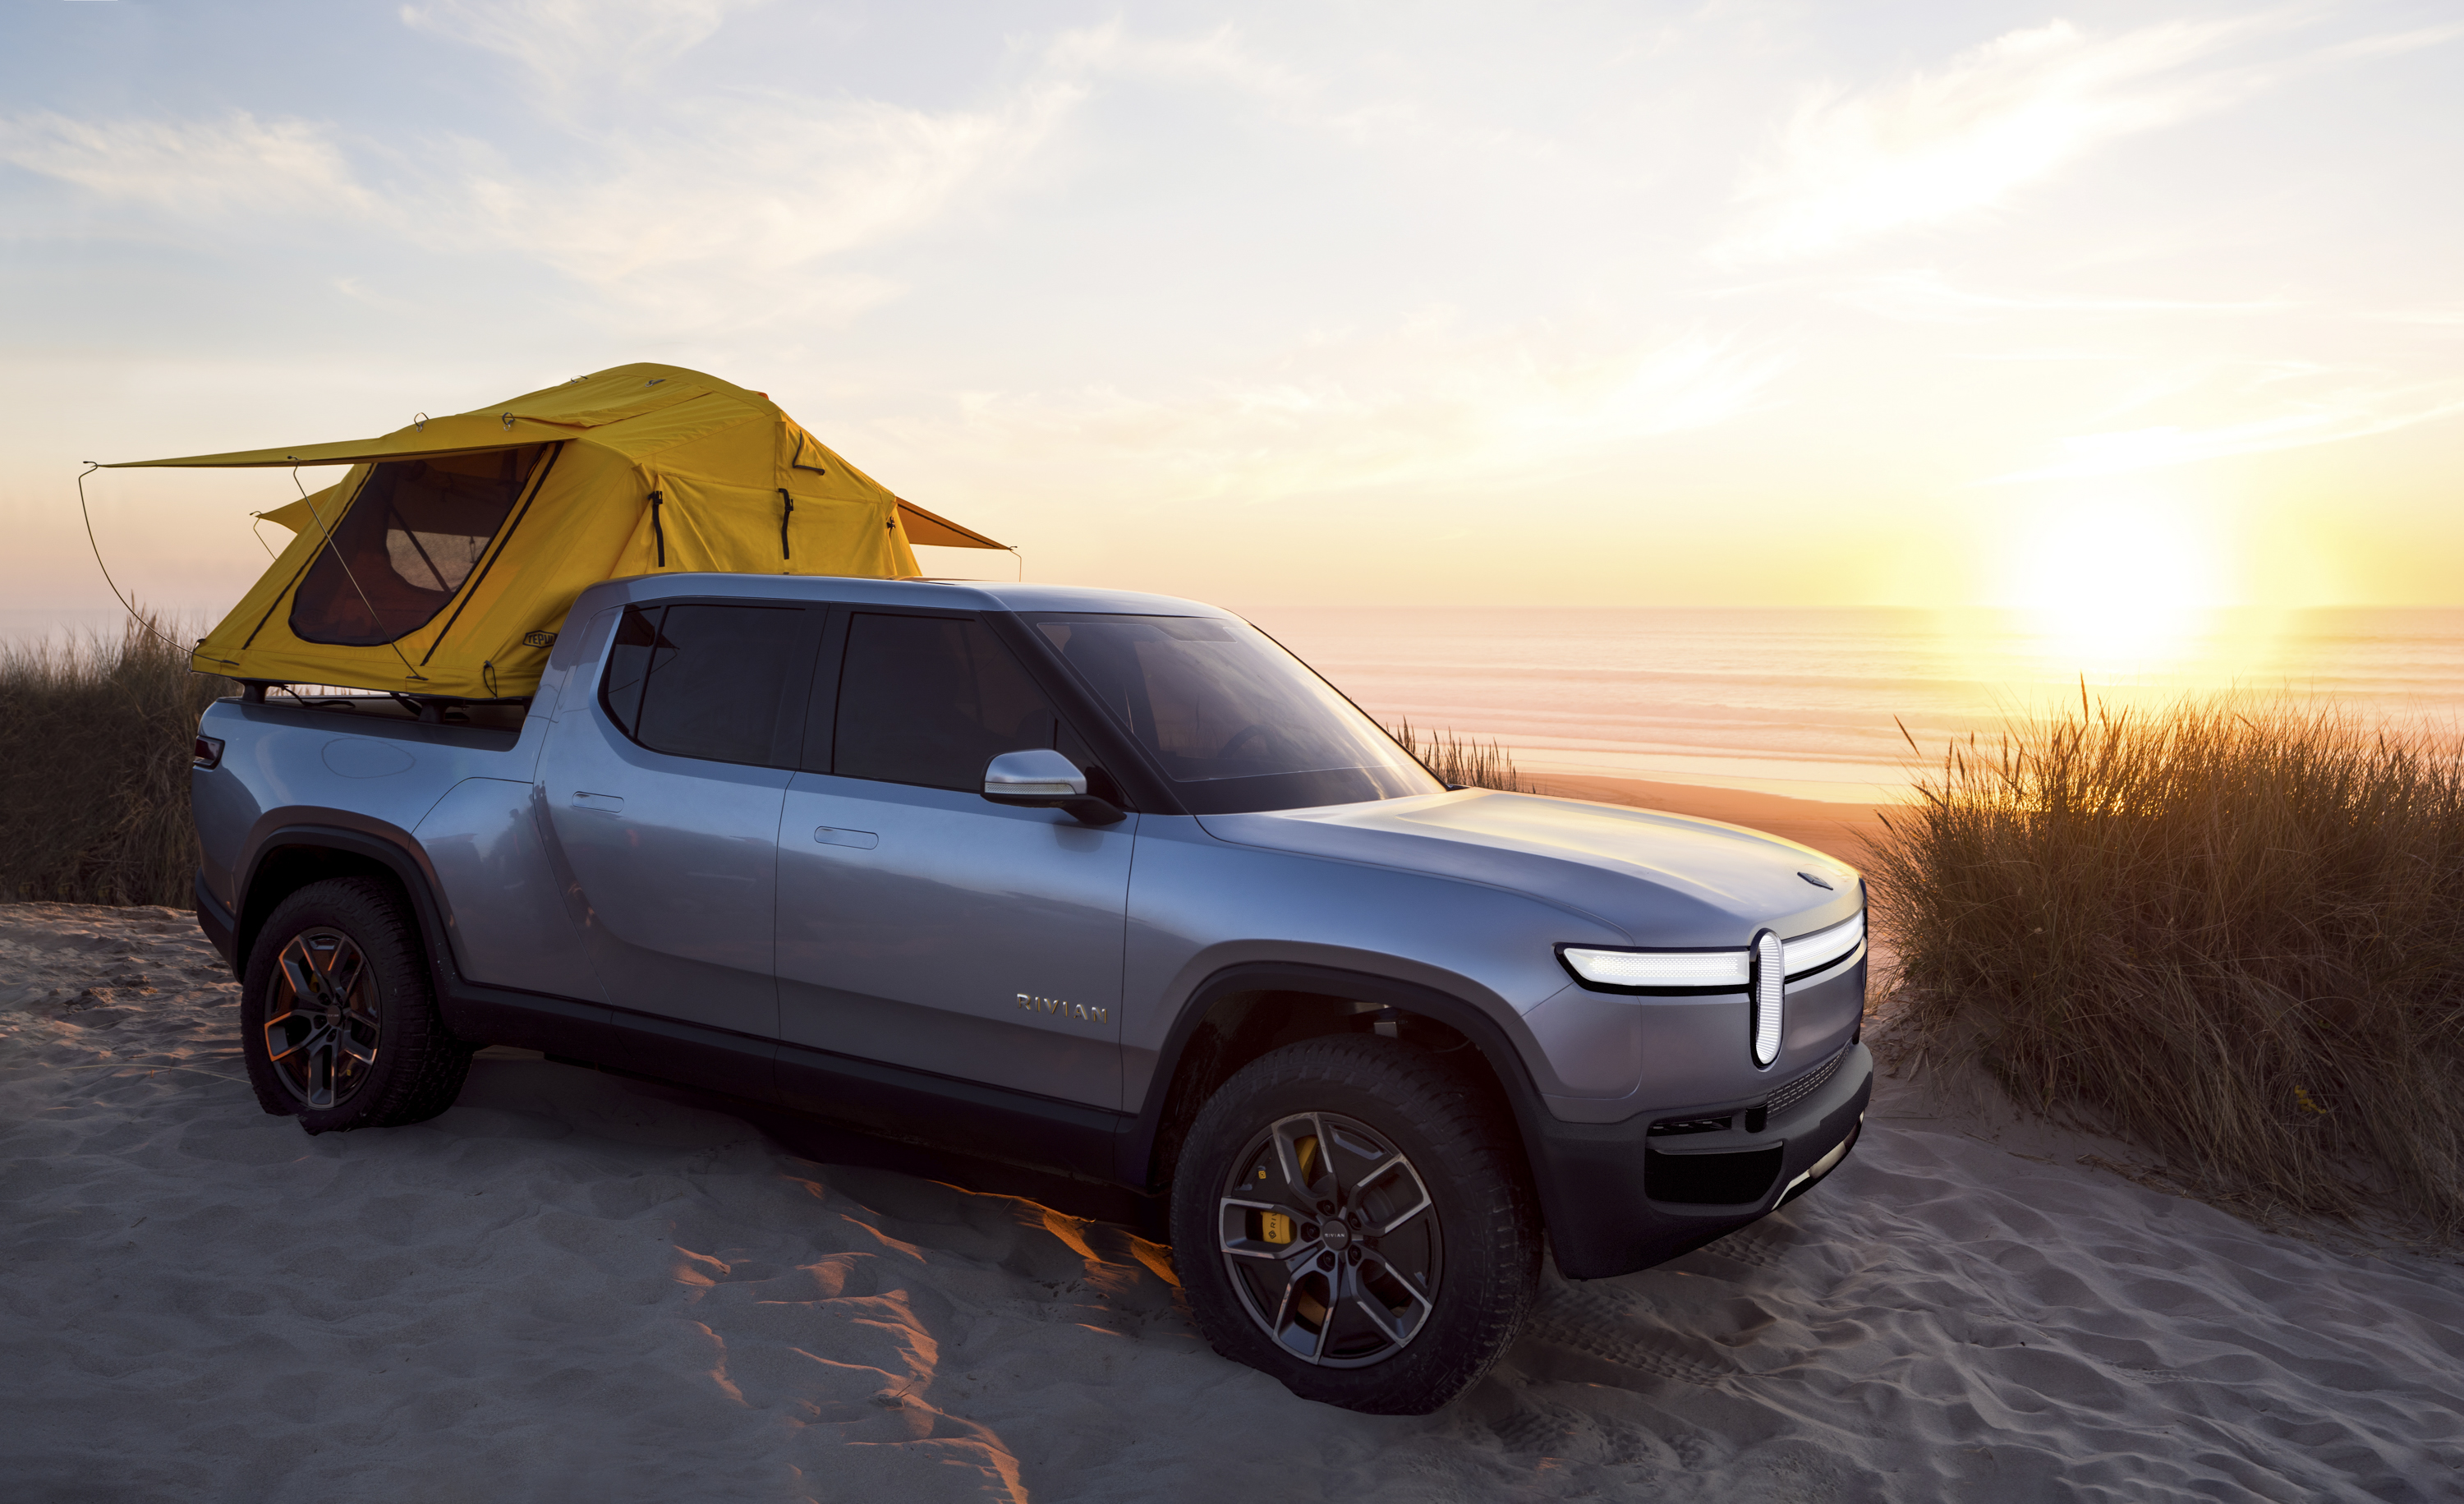 2020 Rivian R1T Pickup Pictures, Photos, Wallpapers. | Top ...